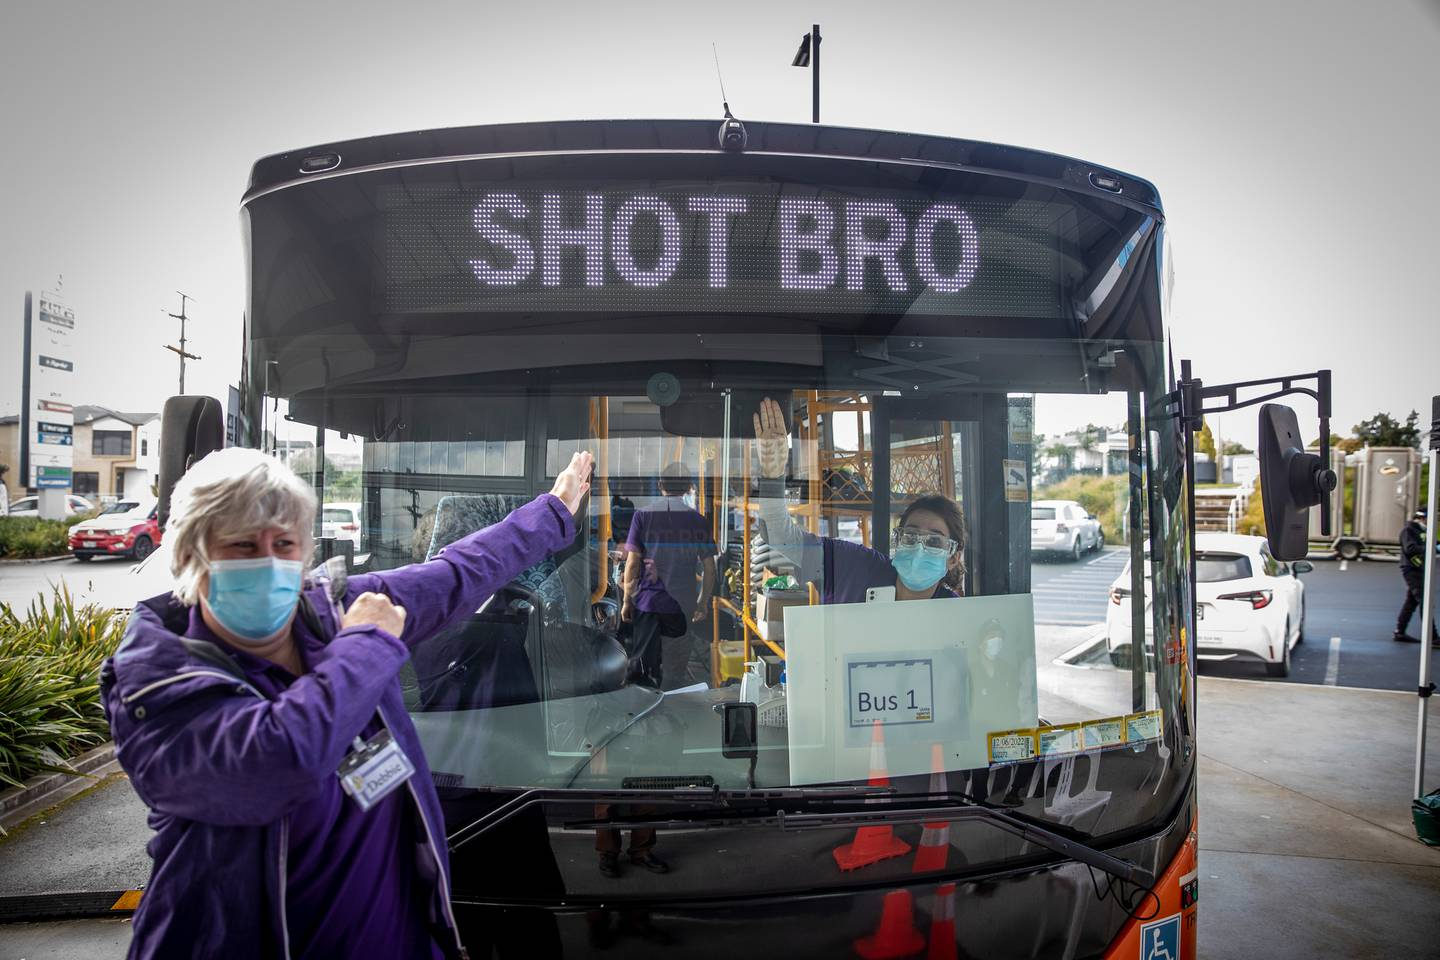 The Shot Bro vaccination bus is one of the initiative's launched last week aimed at getting more Māori and Pasifika people vaccinated. Photo / Michael Craig